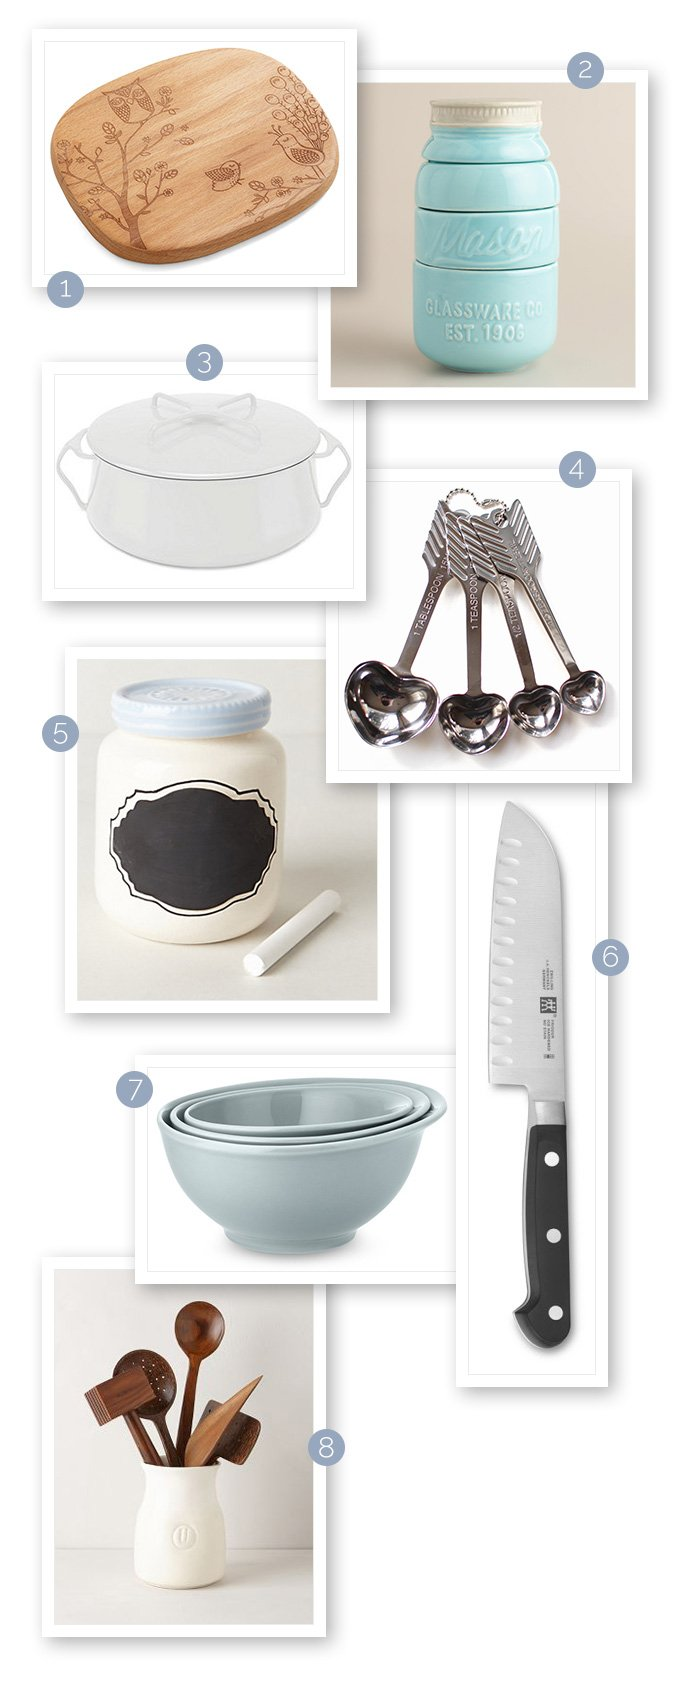 kitchen essentials 8 Essentials for a Healthy Kitchen